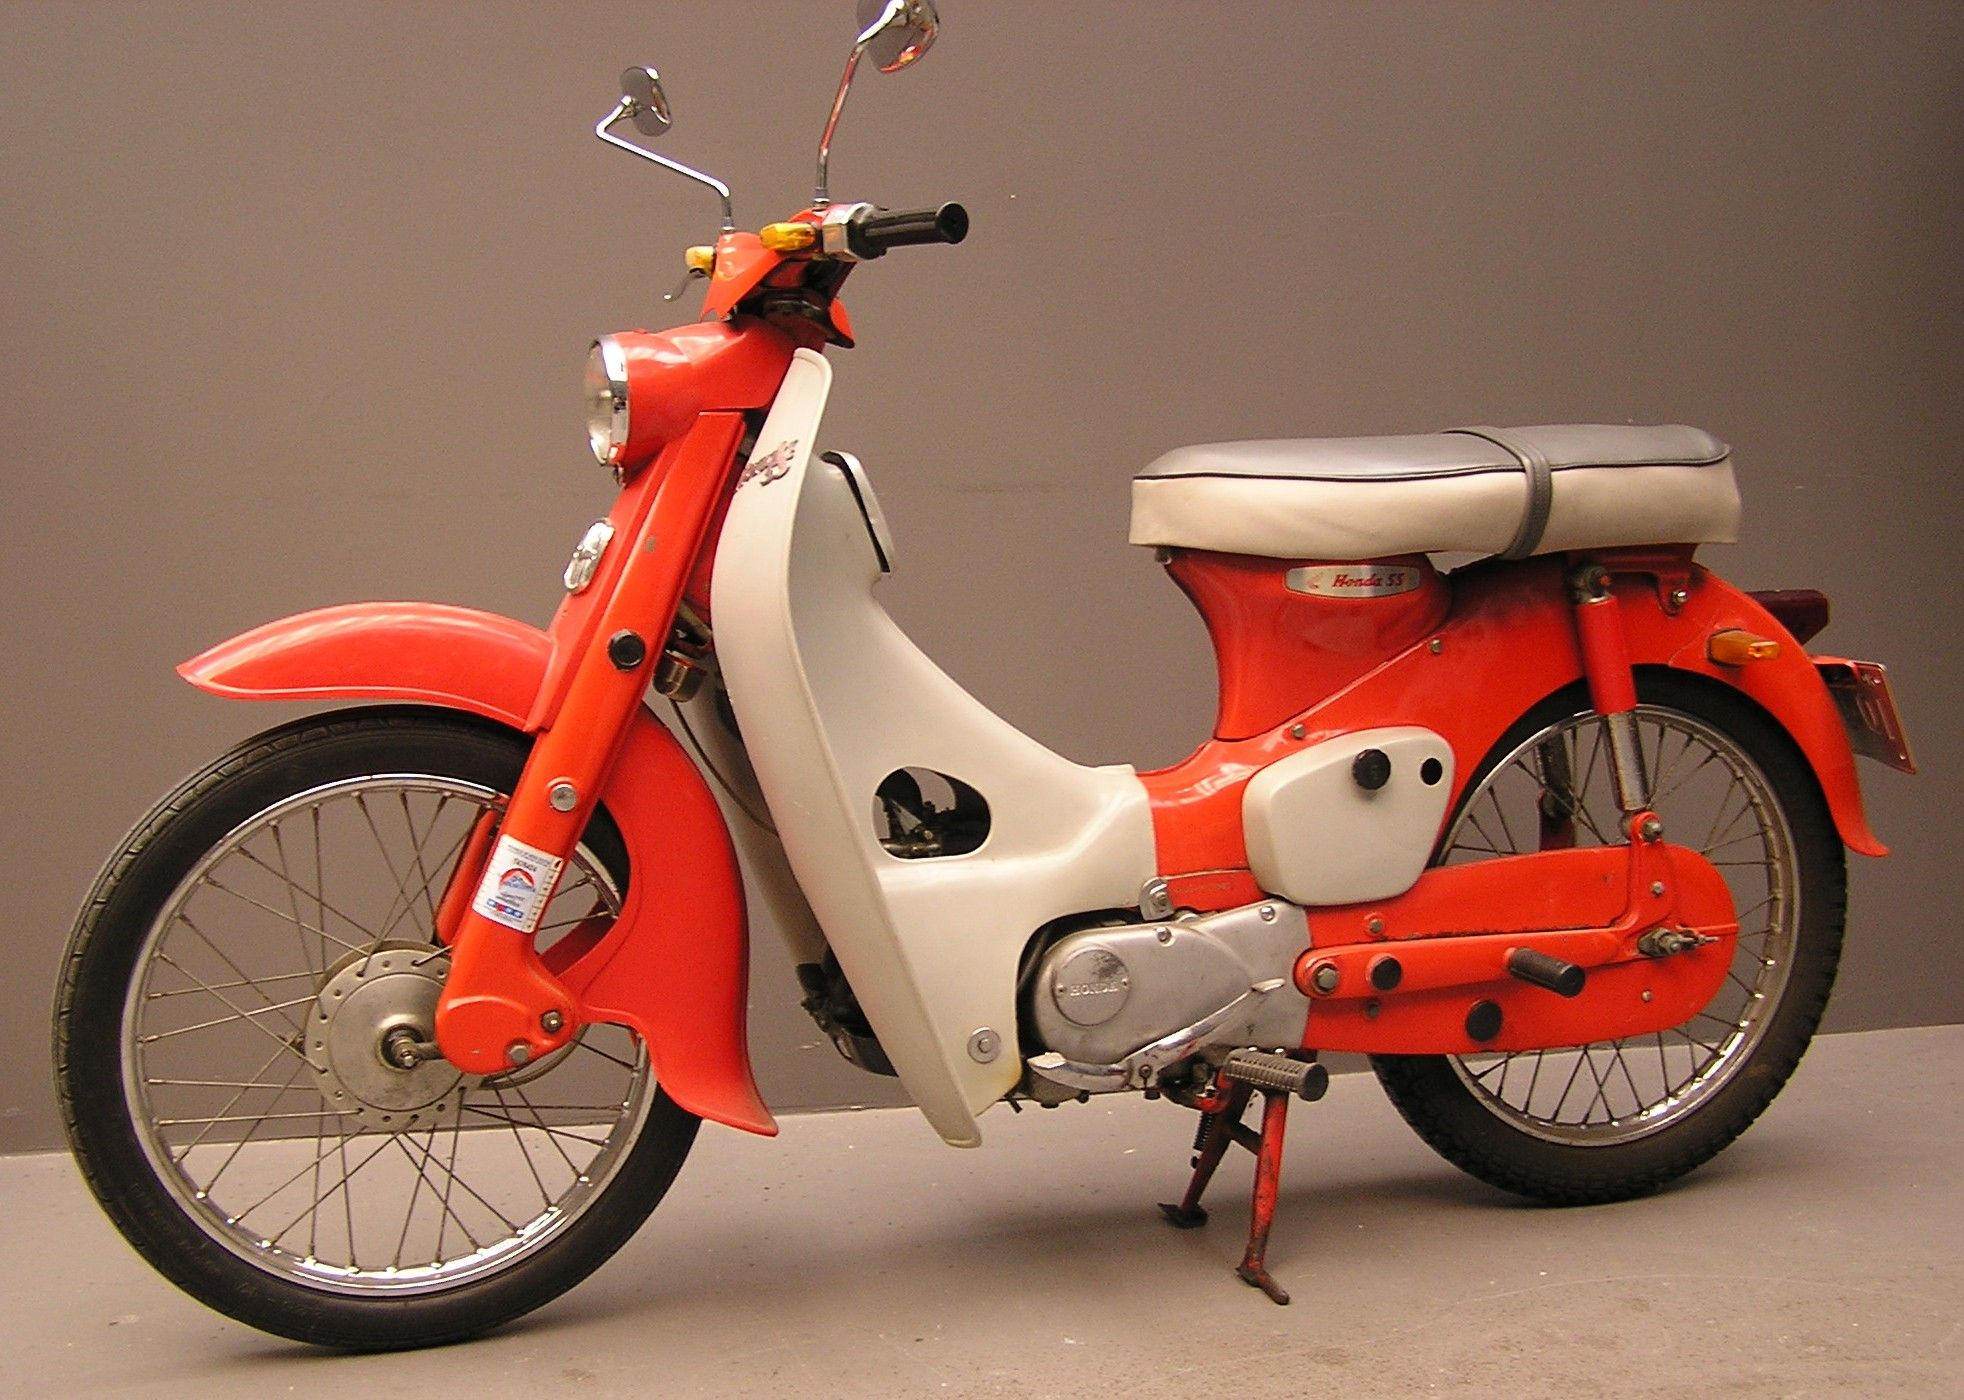 1963 Honda Cub 55 Motorcycle I Really Want A Moto 1 Set C70 Vintage Motorcycles